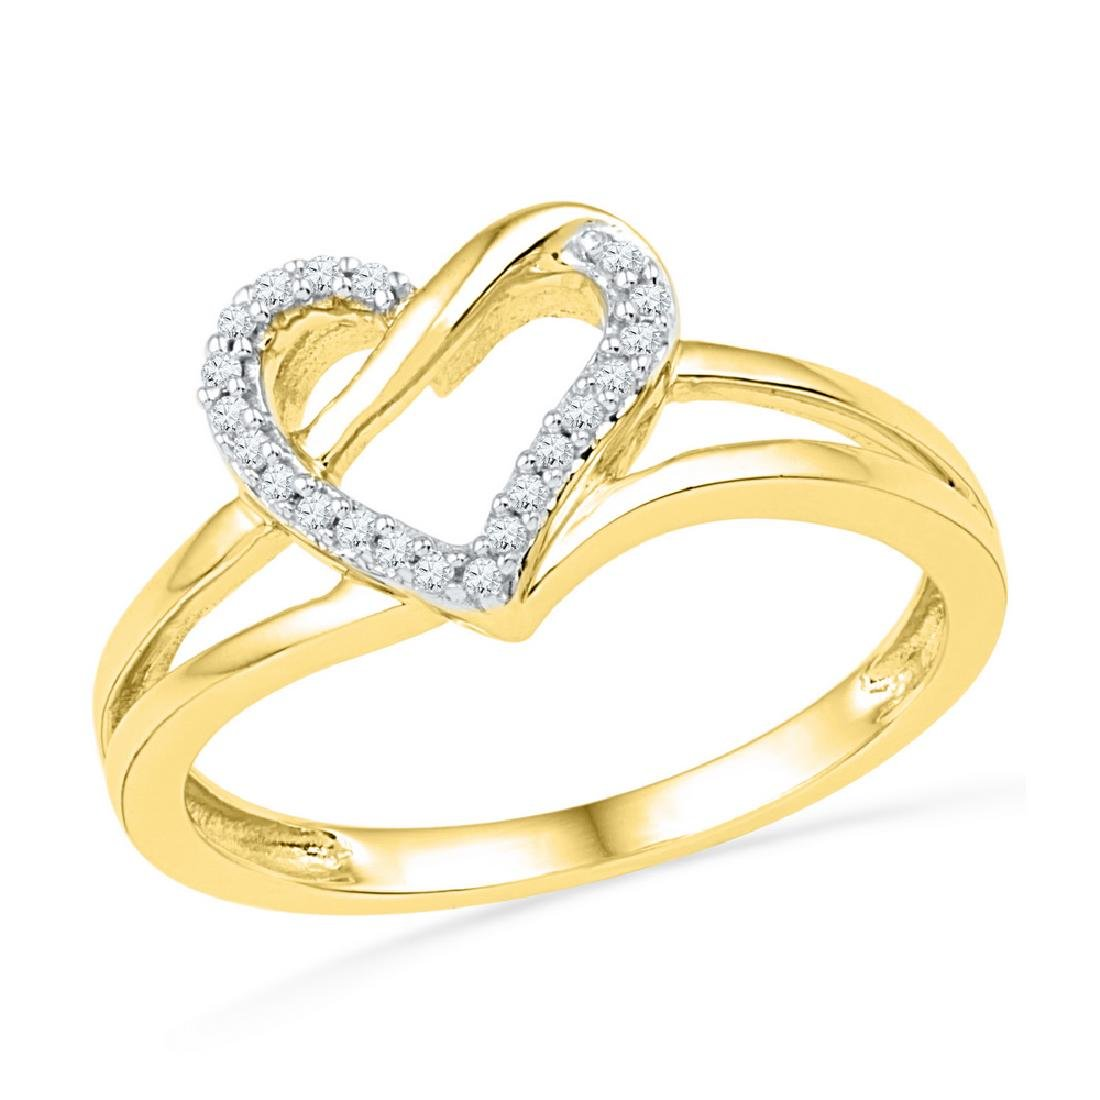 0.06 CTW Diamond Heart Outline Ring 10KT Yellow Gold -